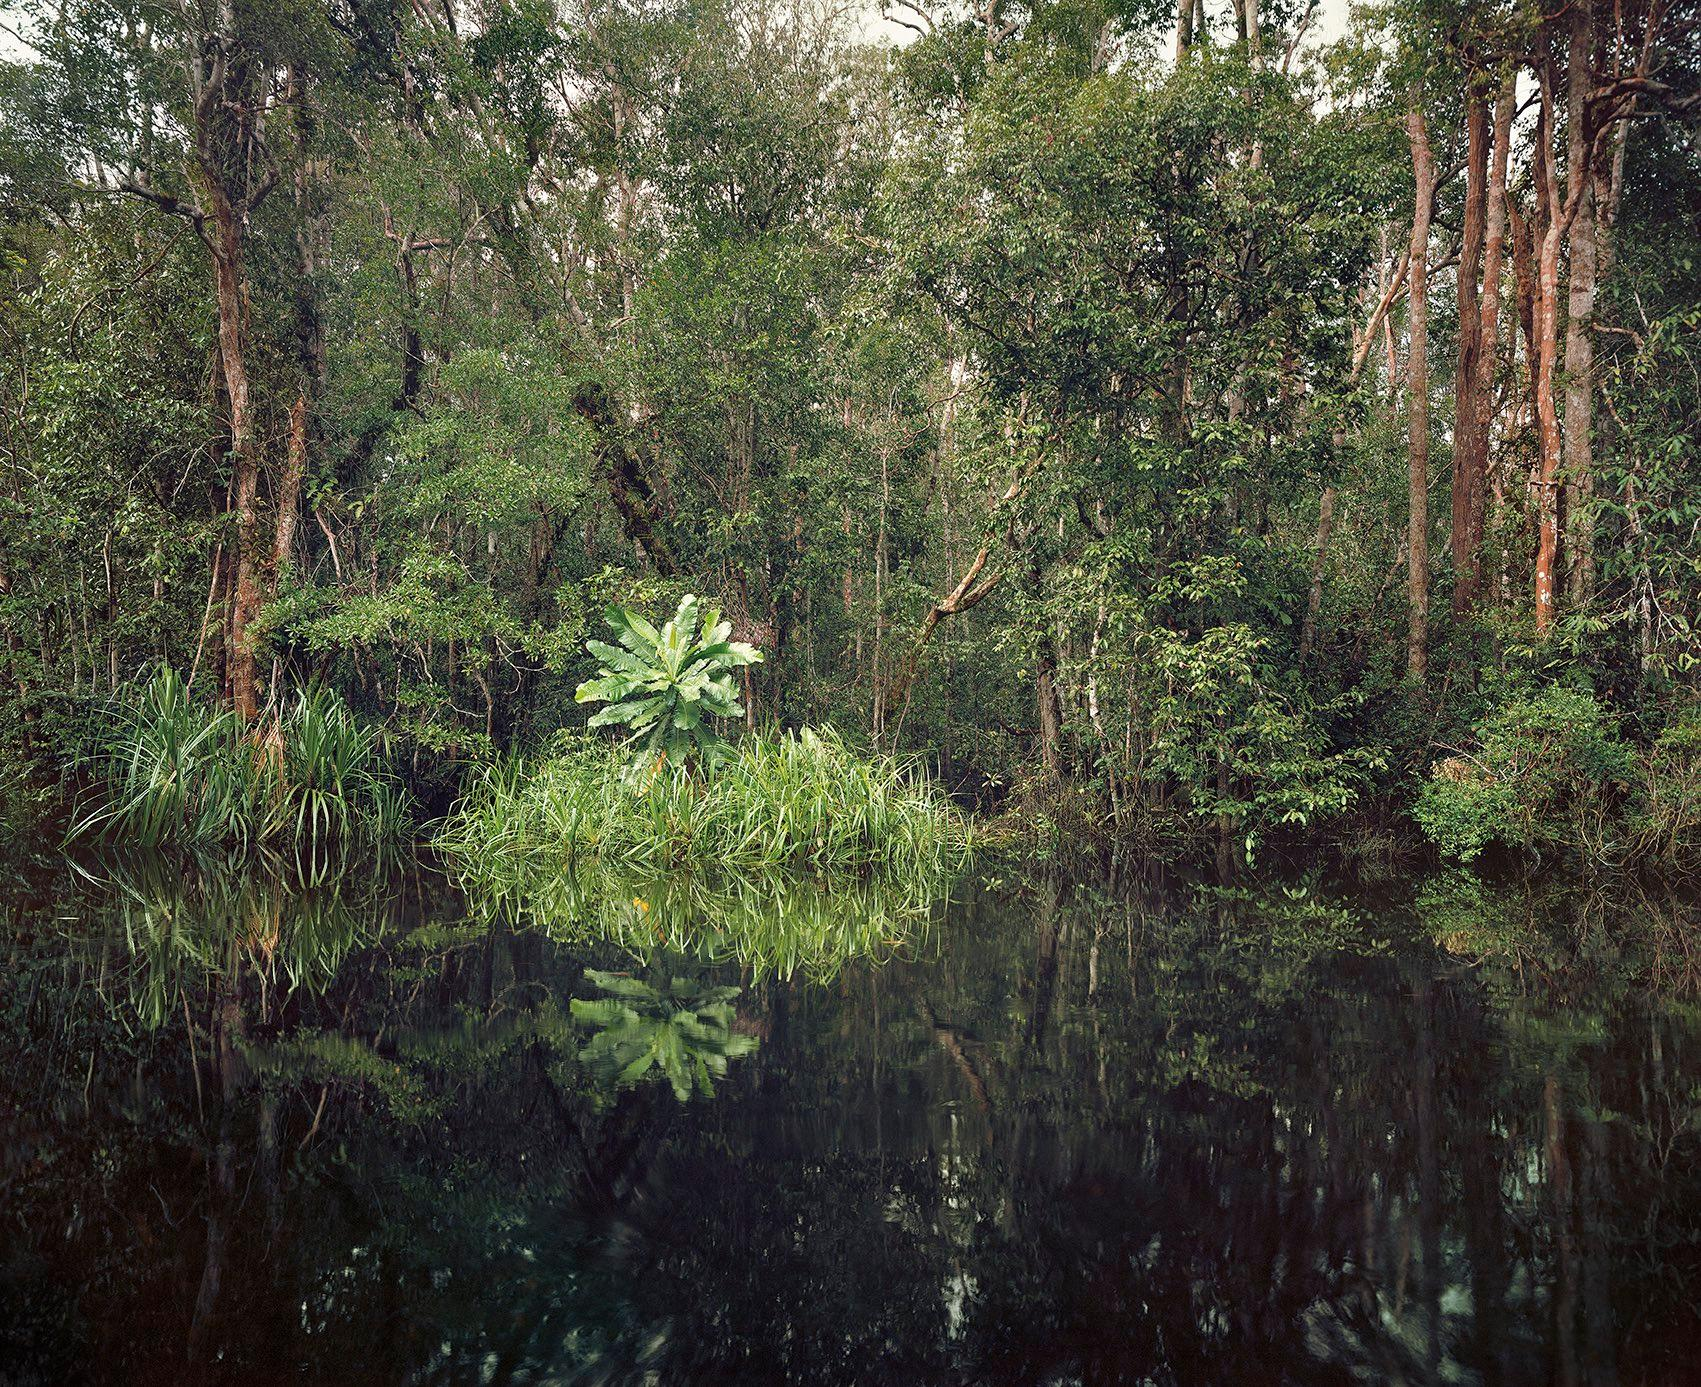 Primary Swamp Forest 01, Black Water, Kalimantan, Indonesia - Olaf Otto Becker